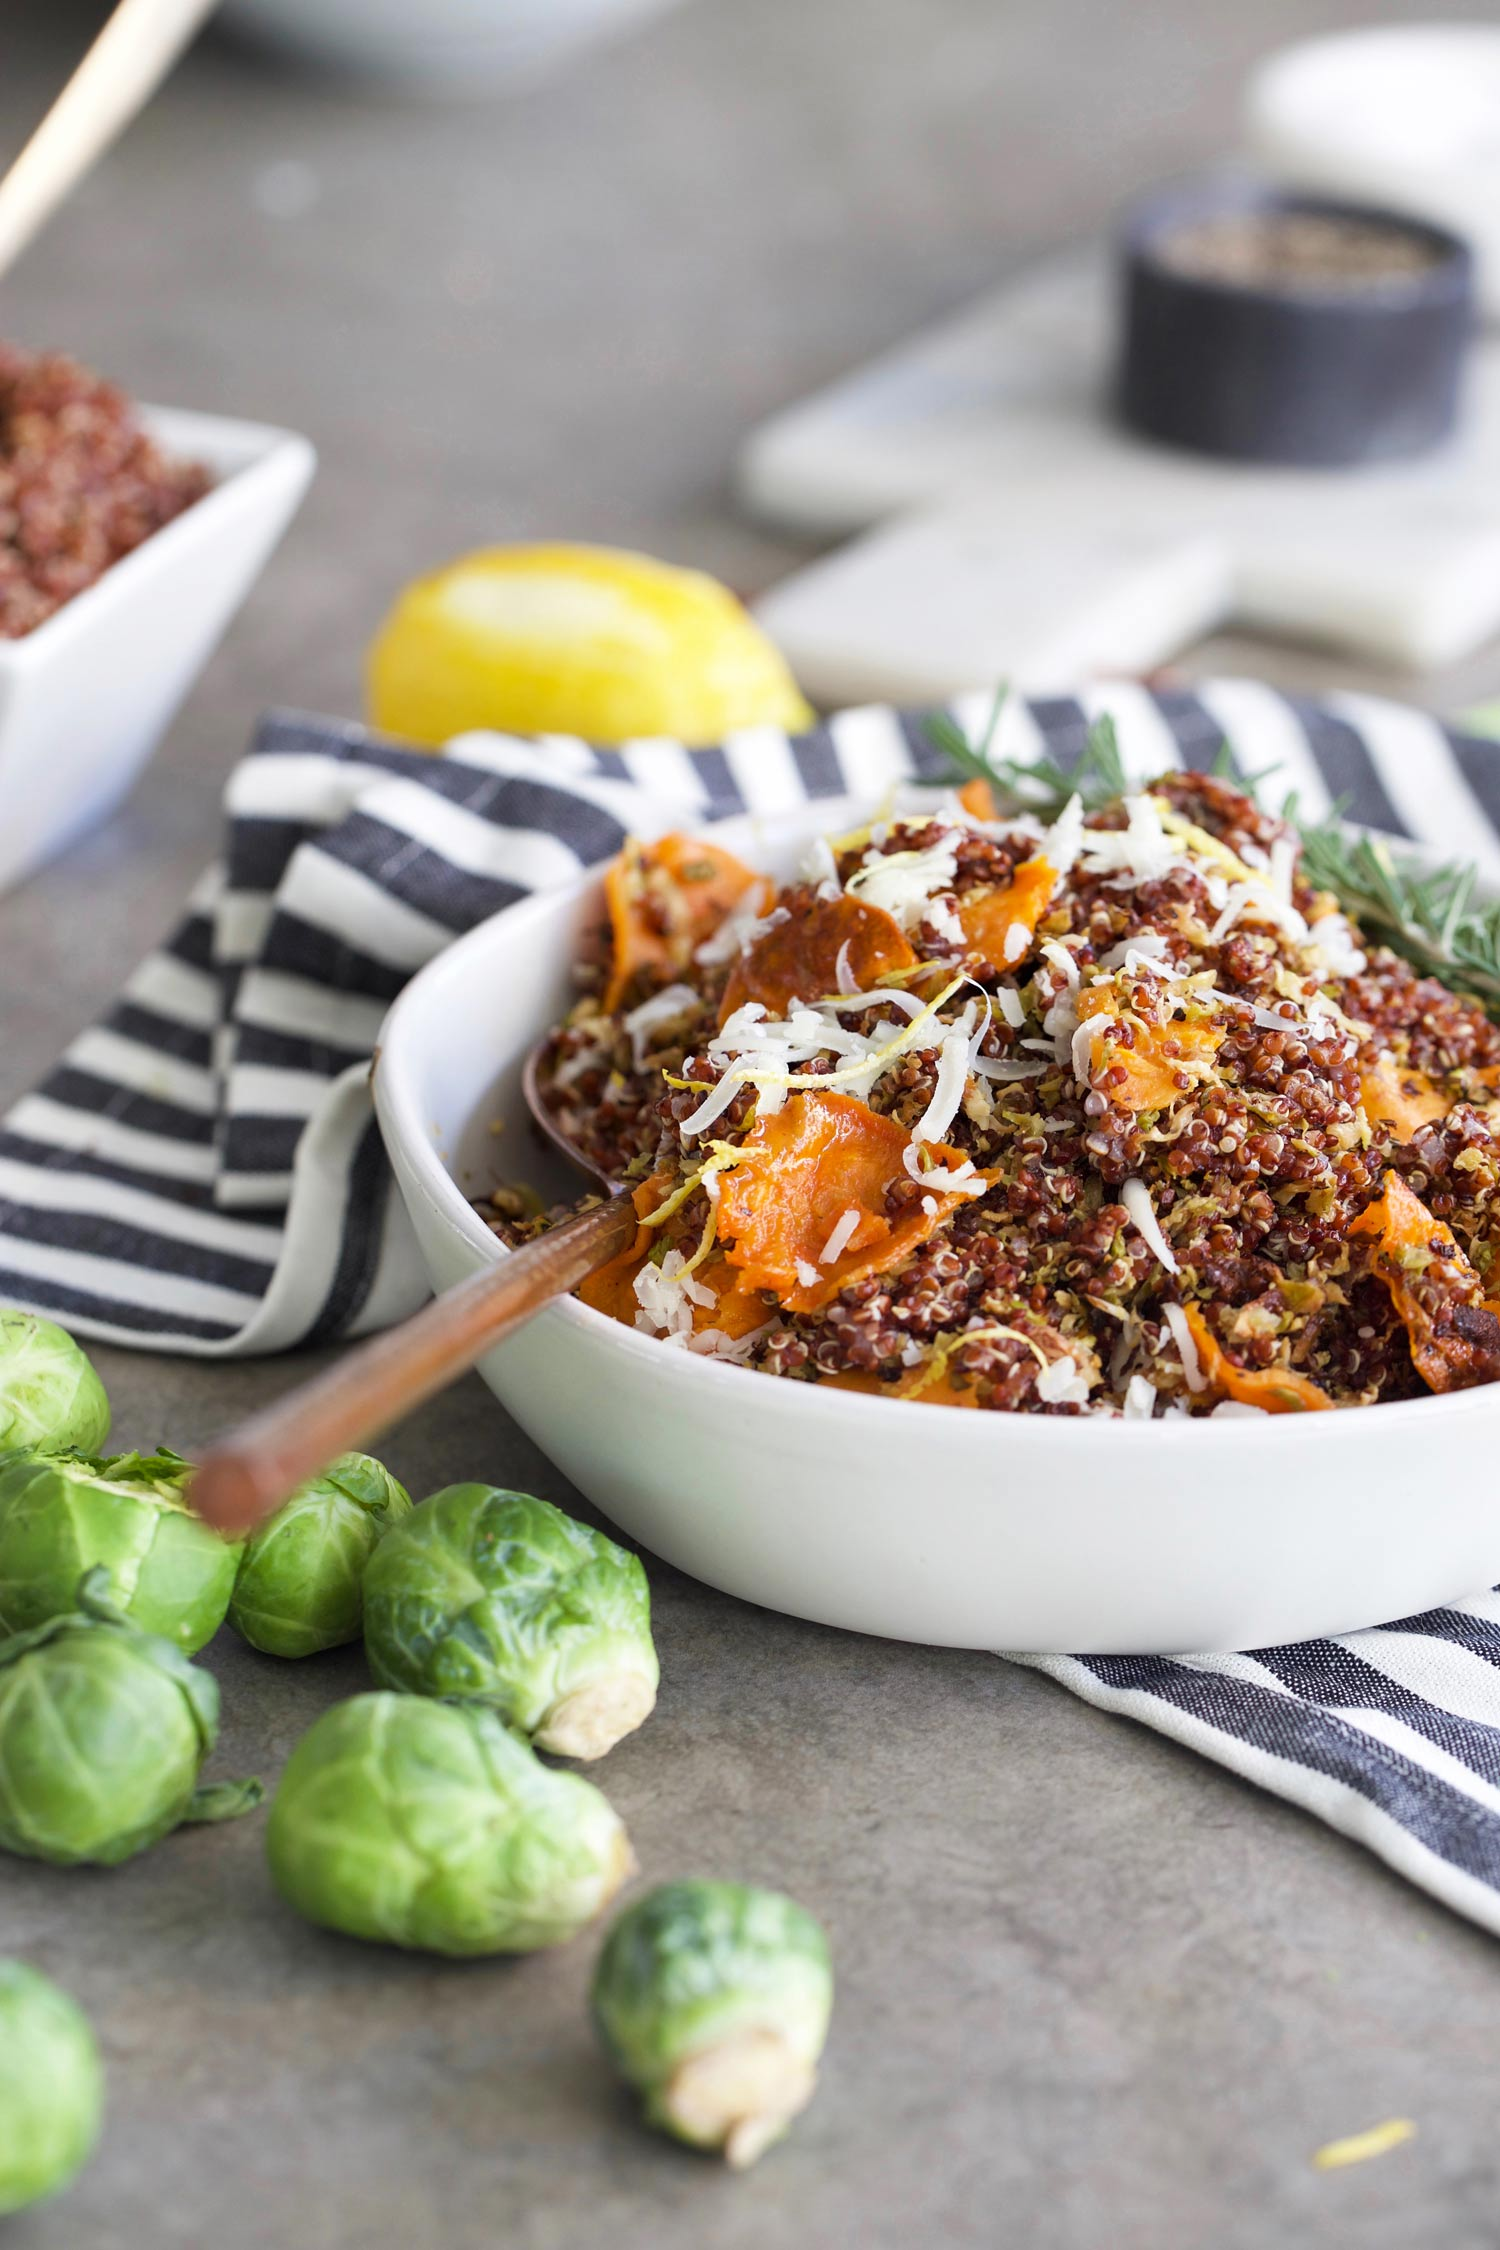 crispy Brussels sprouts with quinoa and sweet potatoes in a bowl